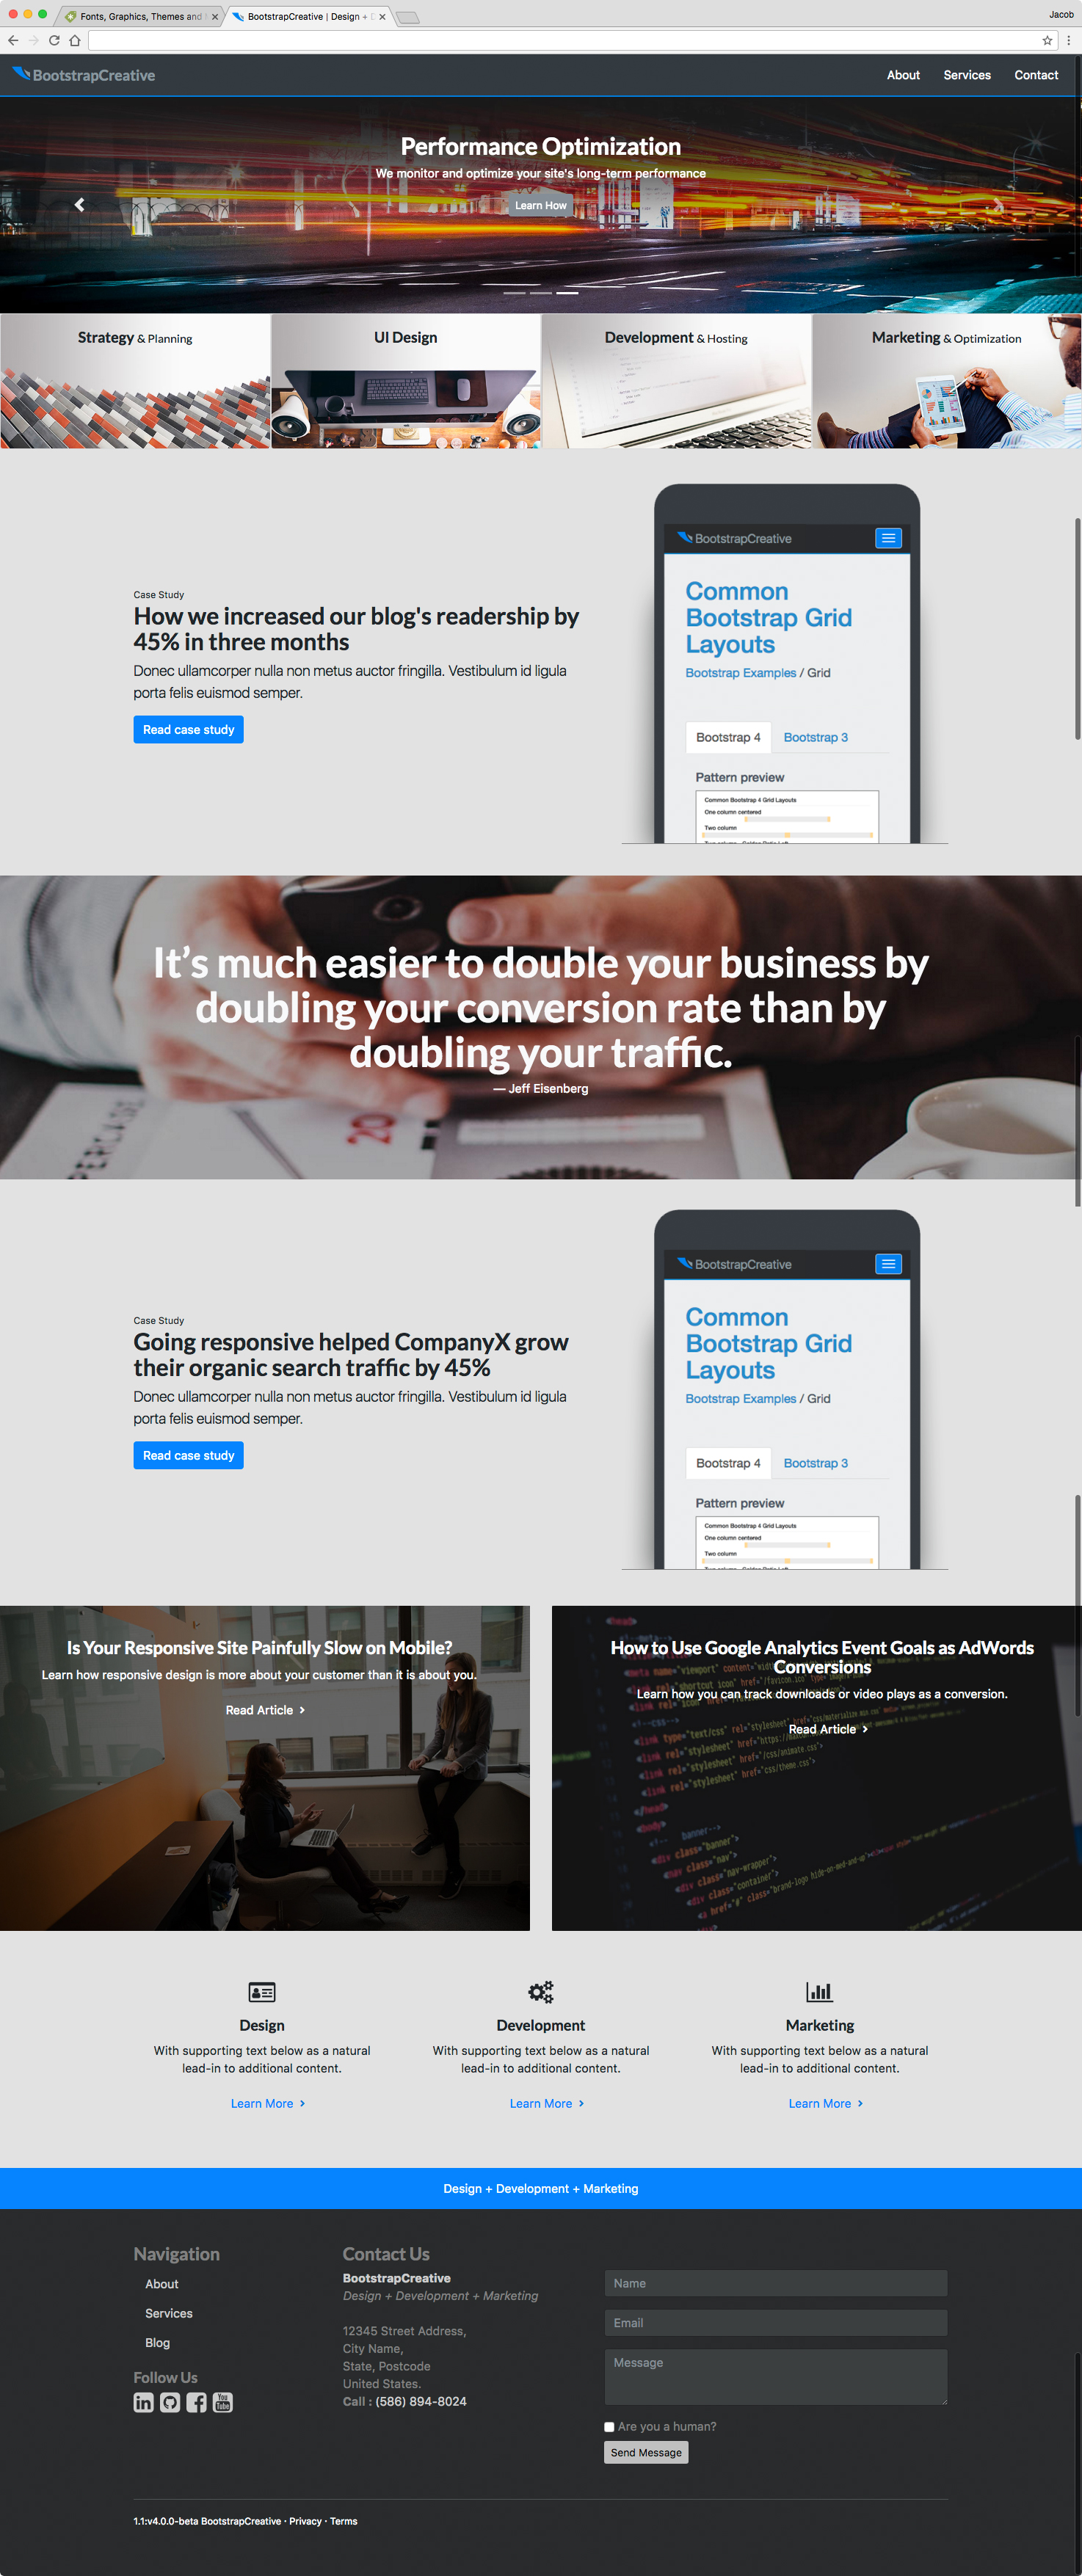 Responsive Marketing Agency Website Template - Bootstrap 4 example image 2